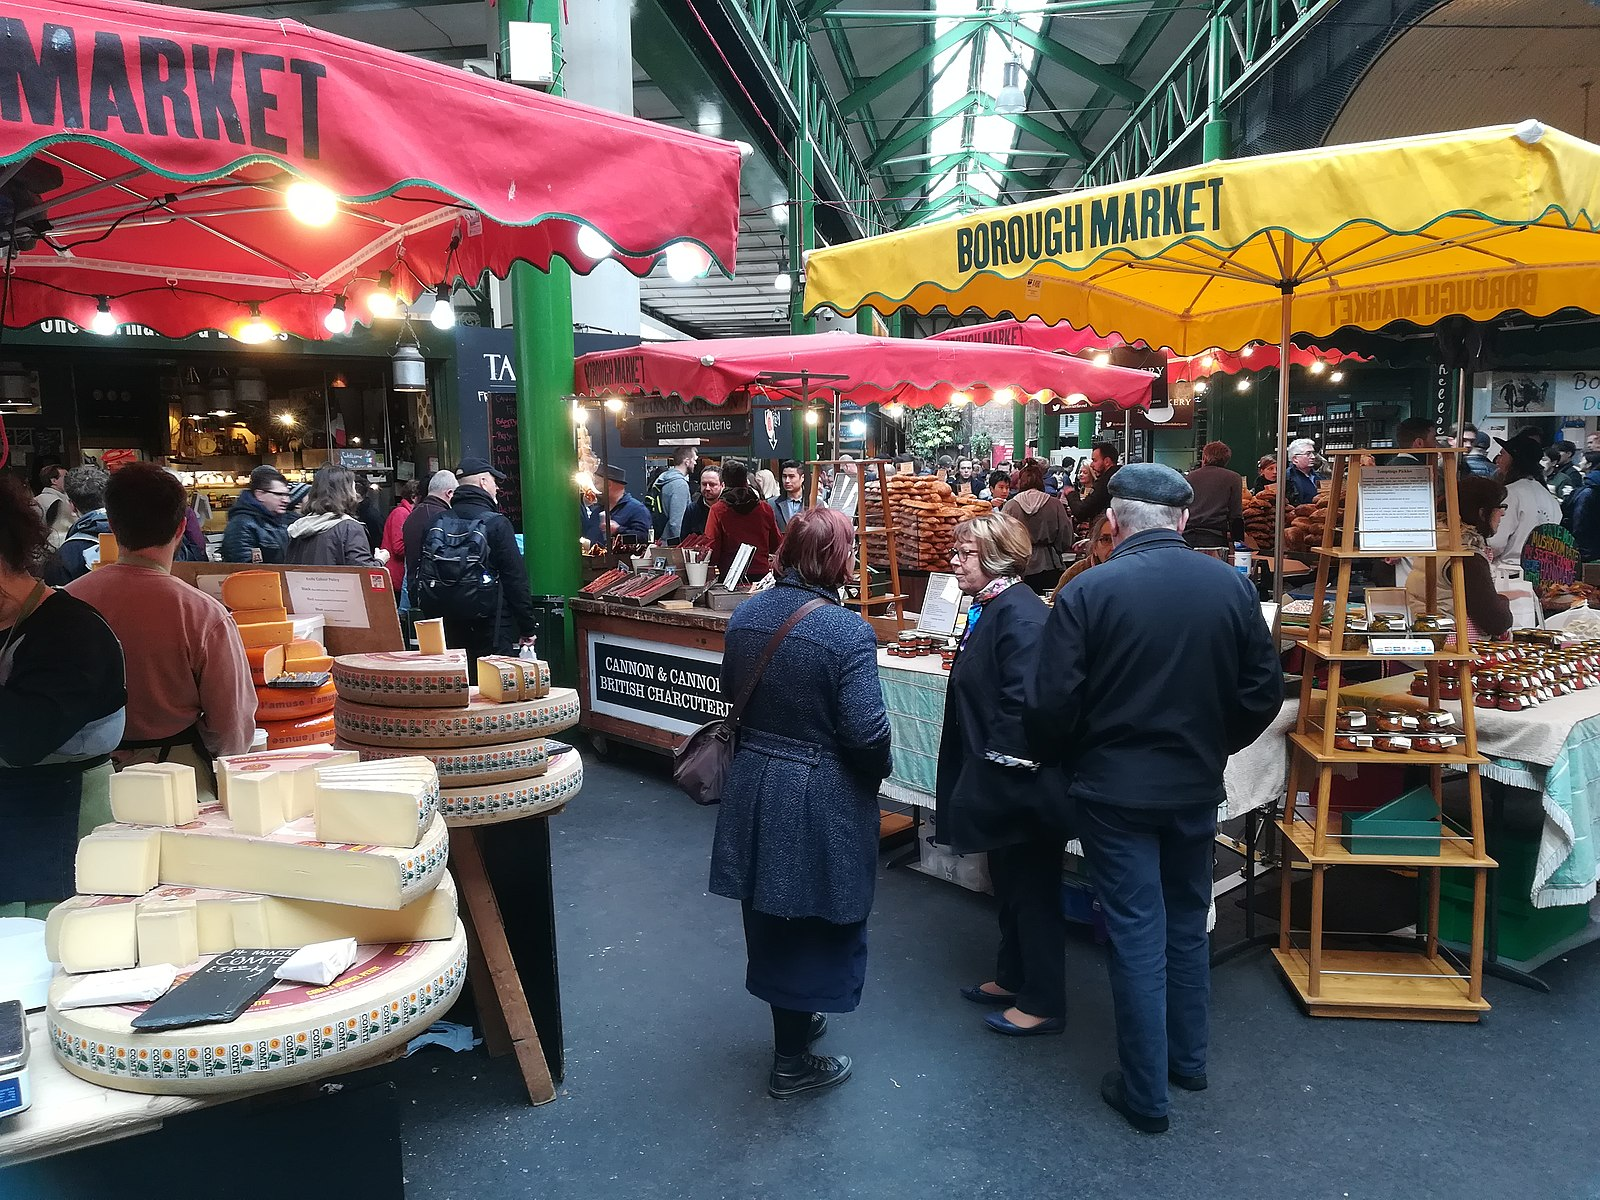 Borough Market(圖/MOs810/CC BY 4.0)